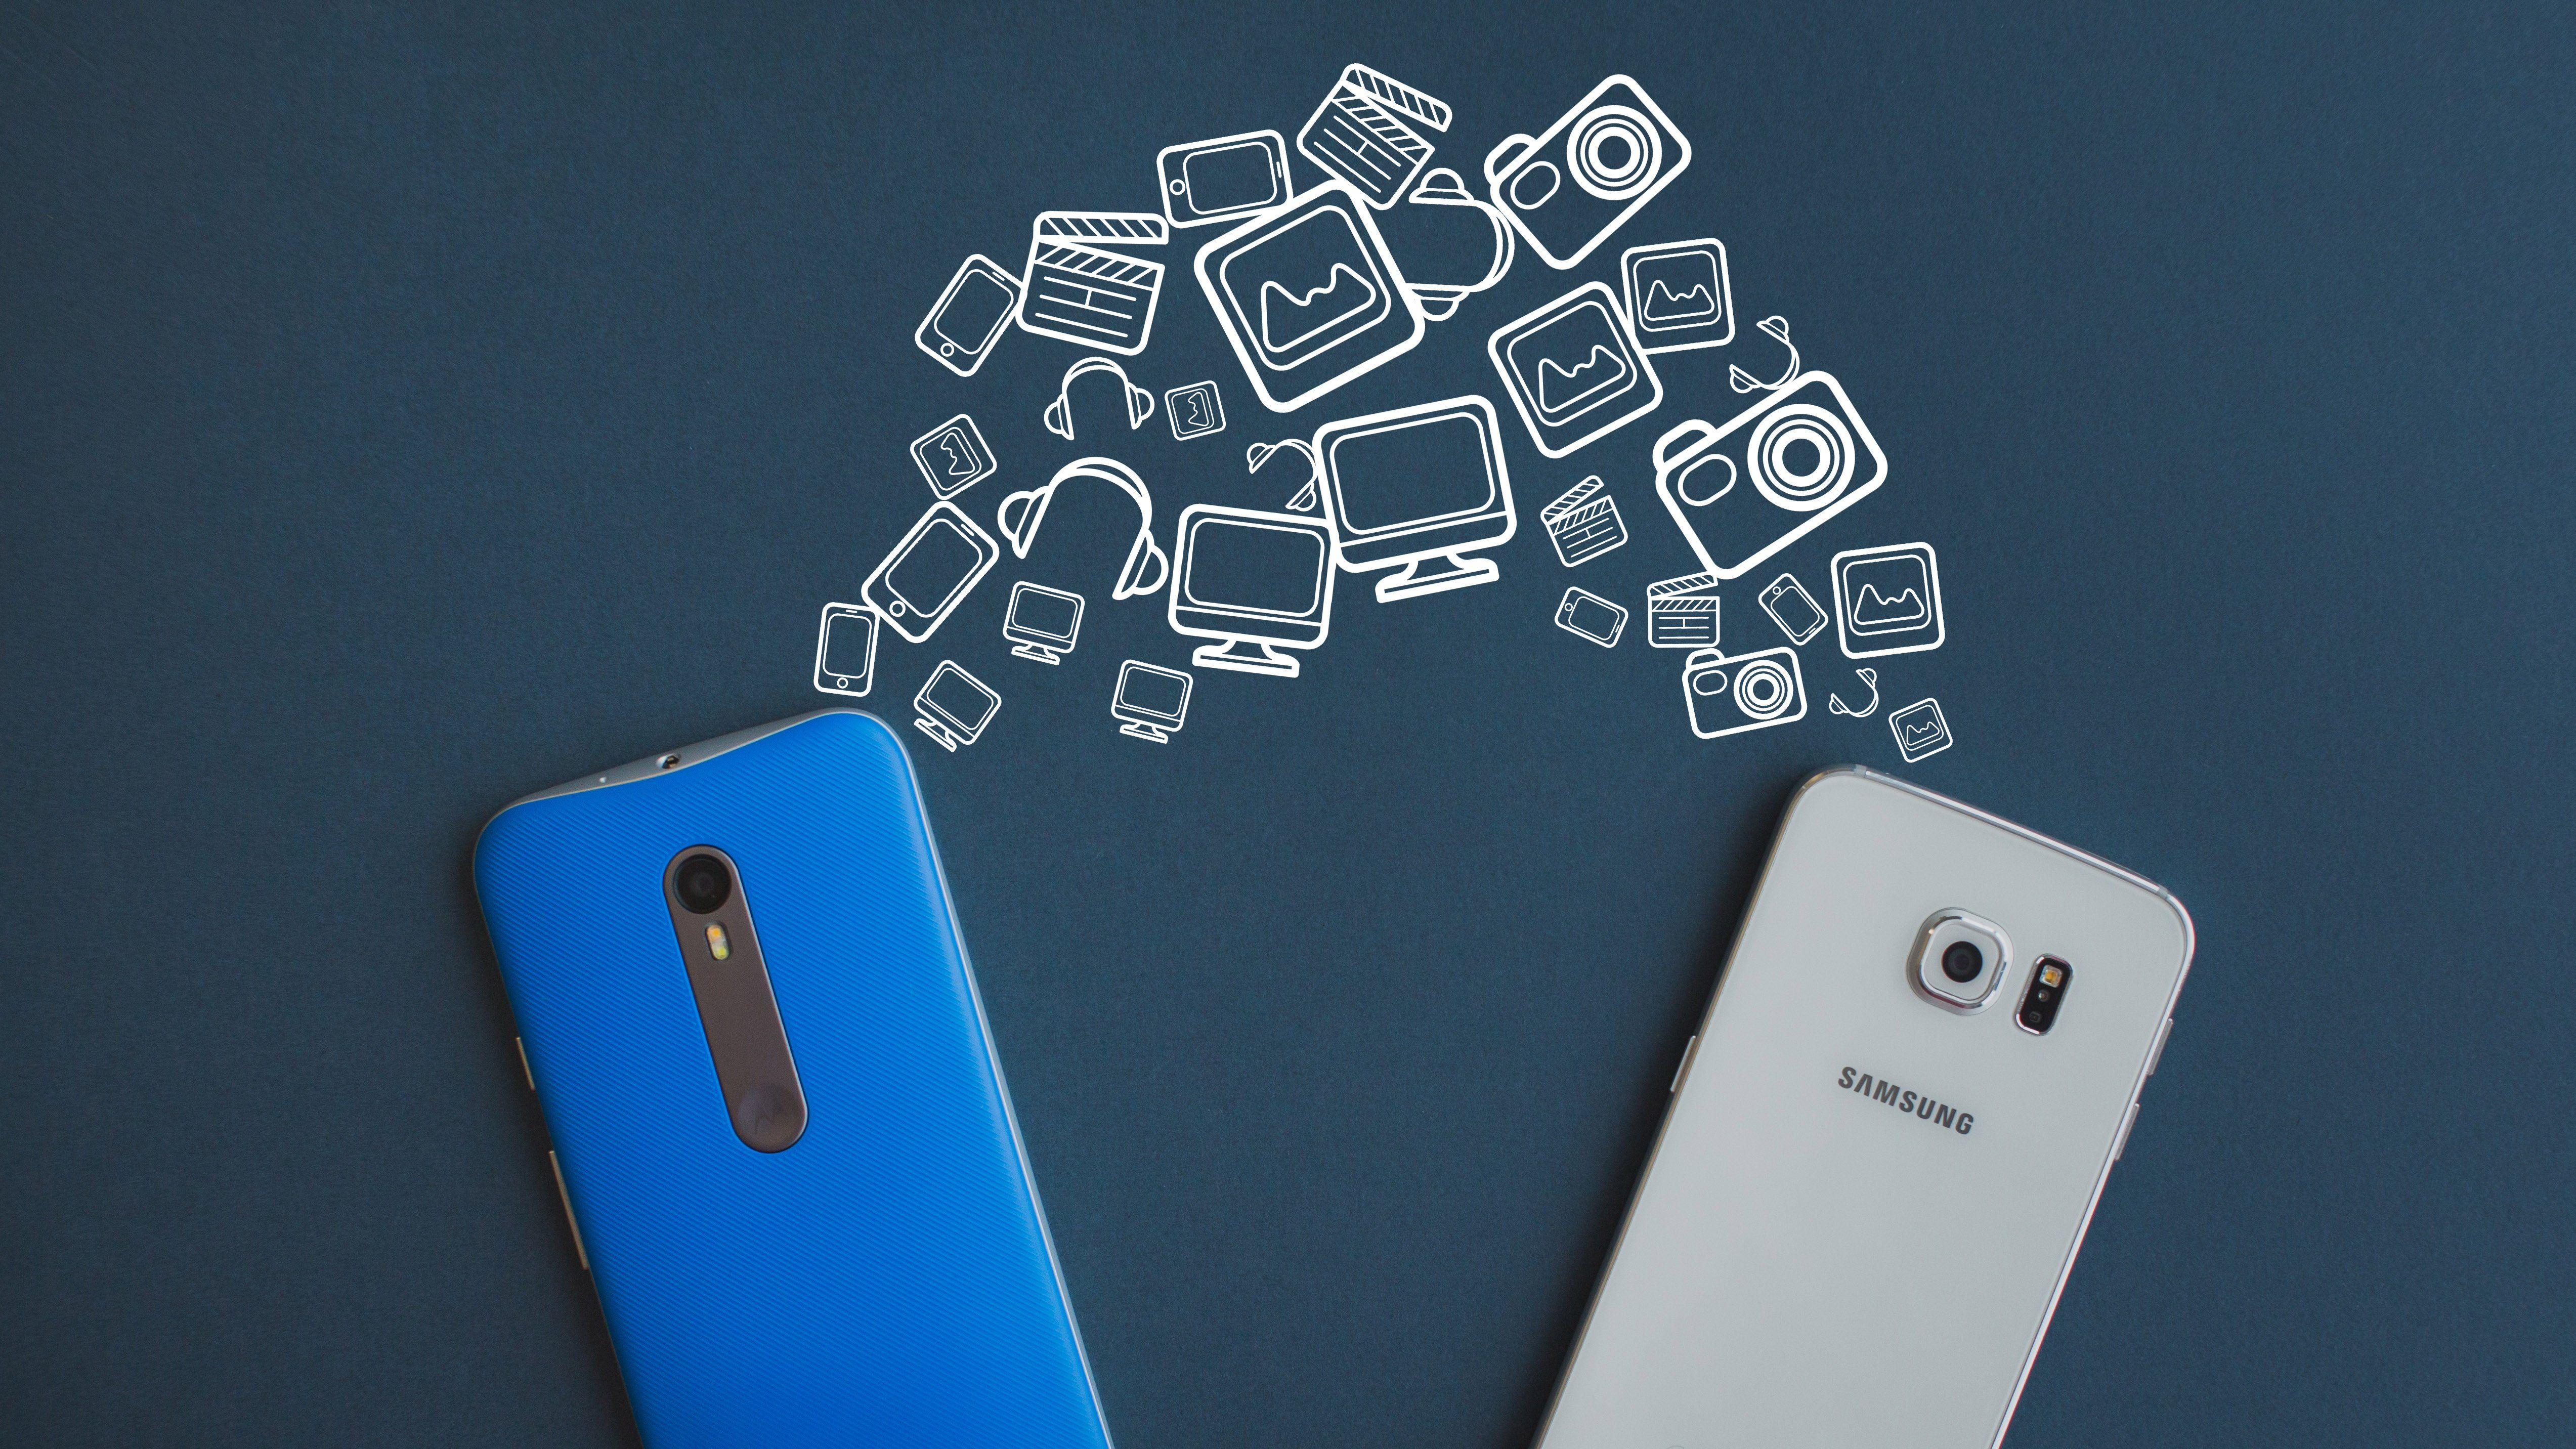 Follow these five simple tips to reduce mobile data usage